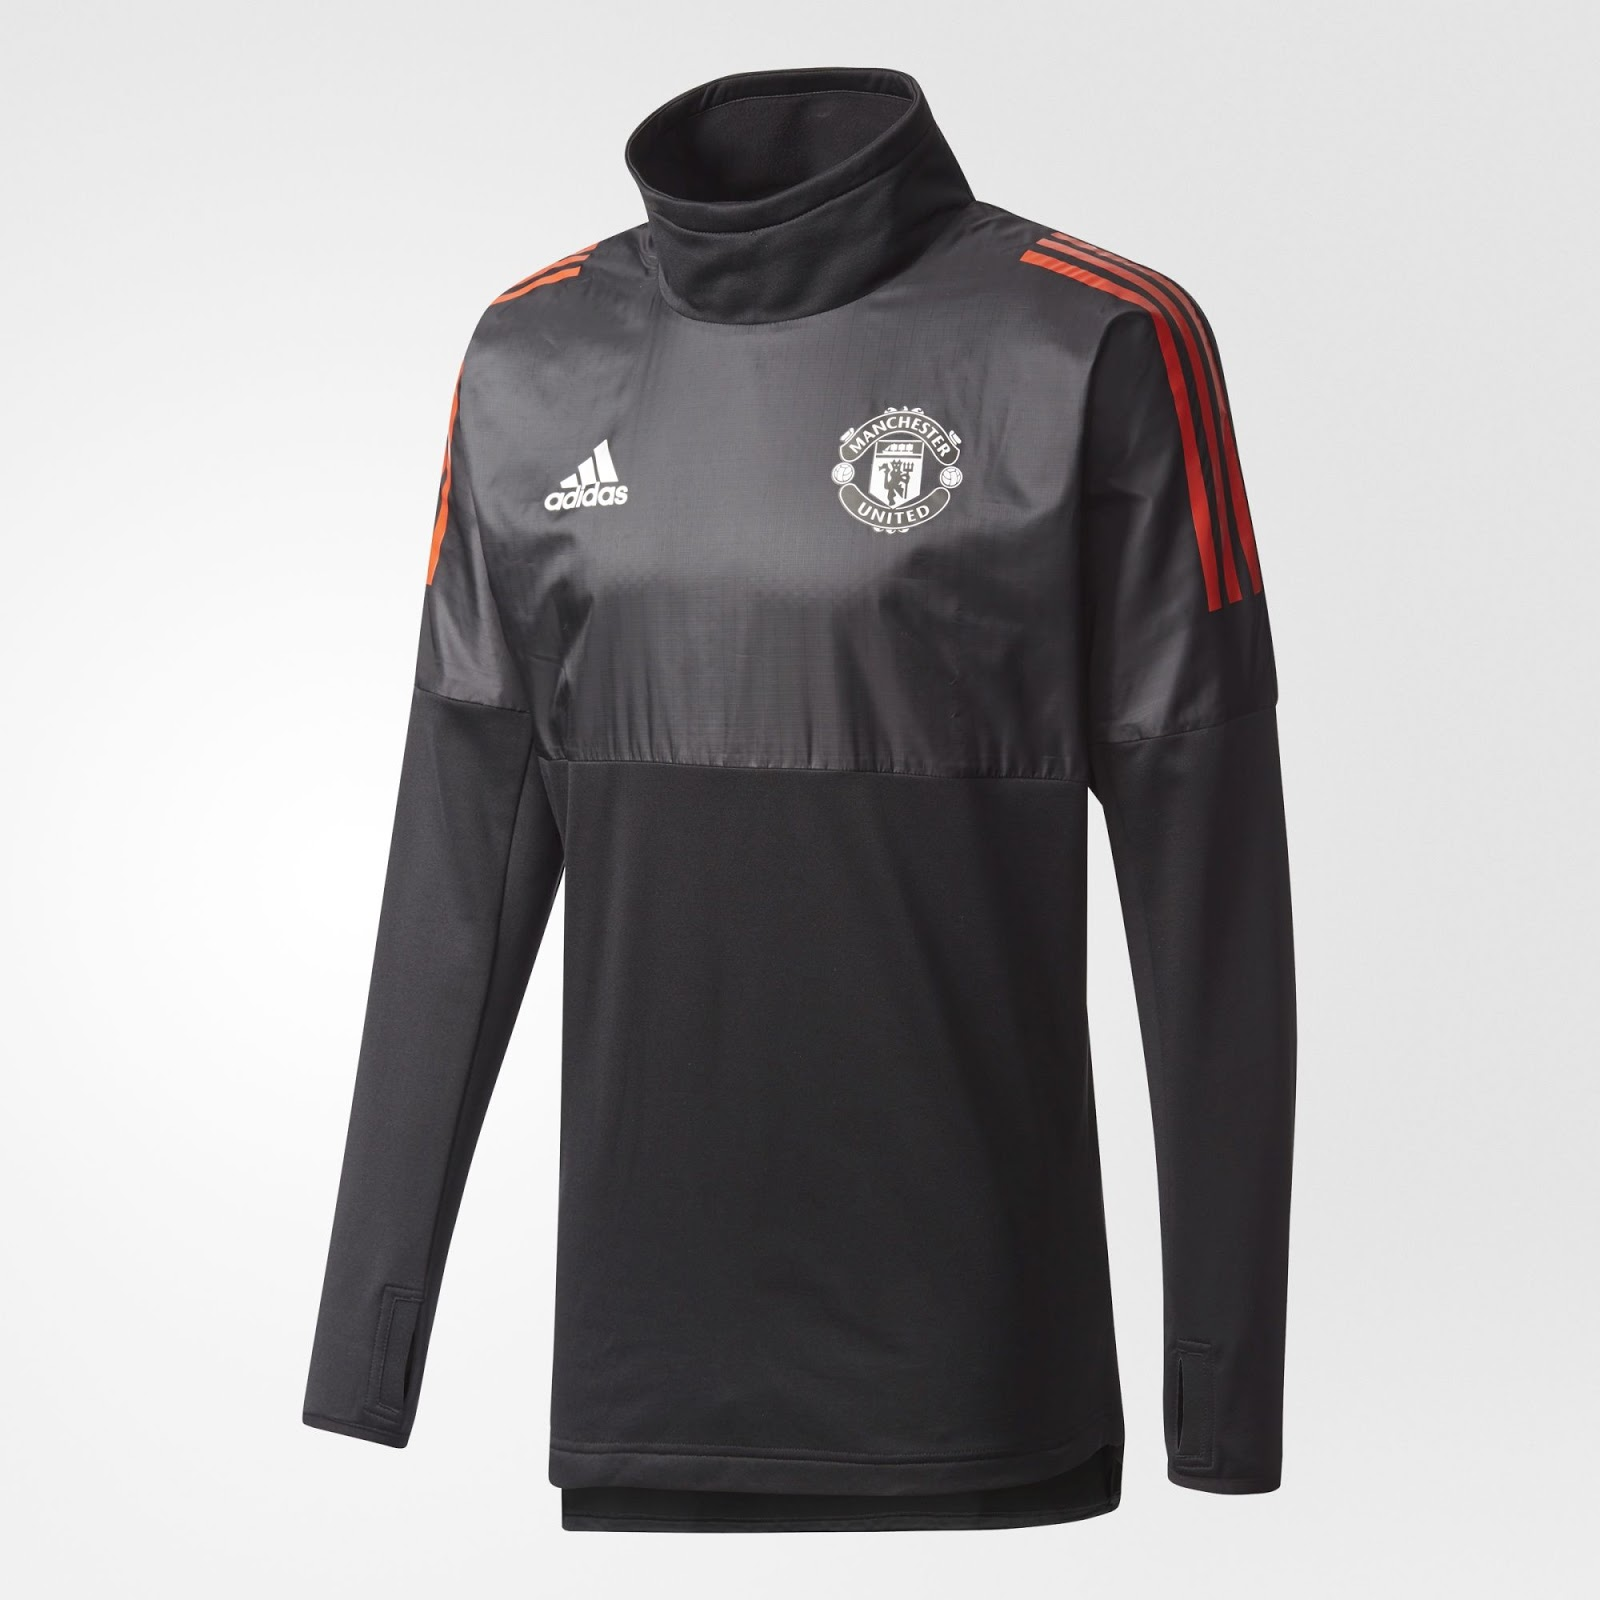 32a818898 manchester united champions league jersey on sale   OFF75% Discounts